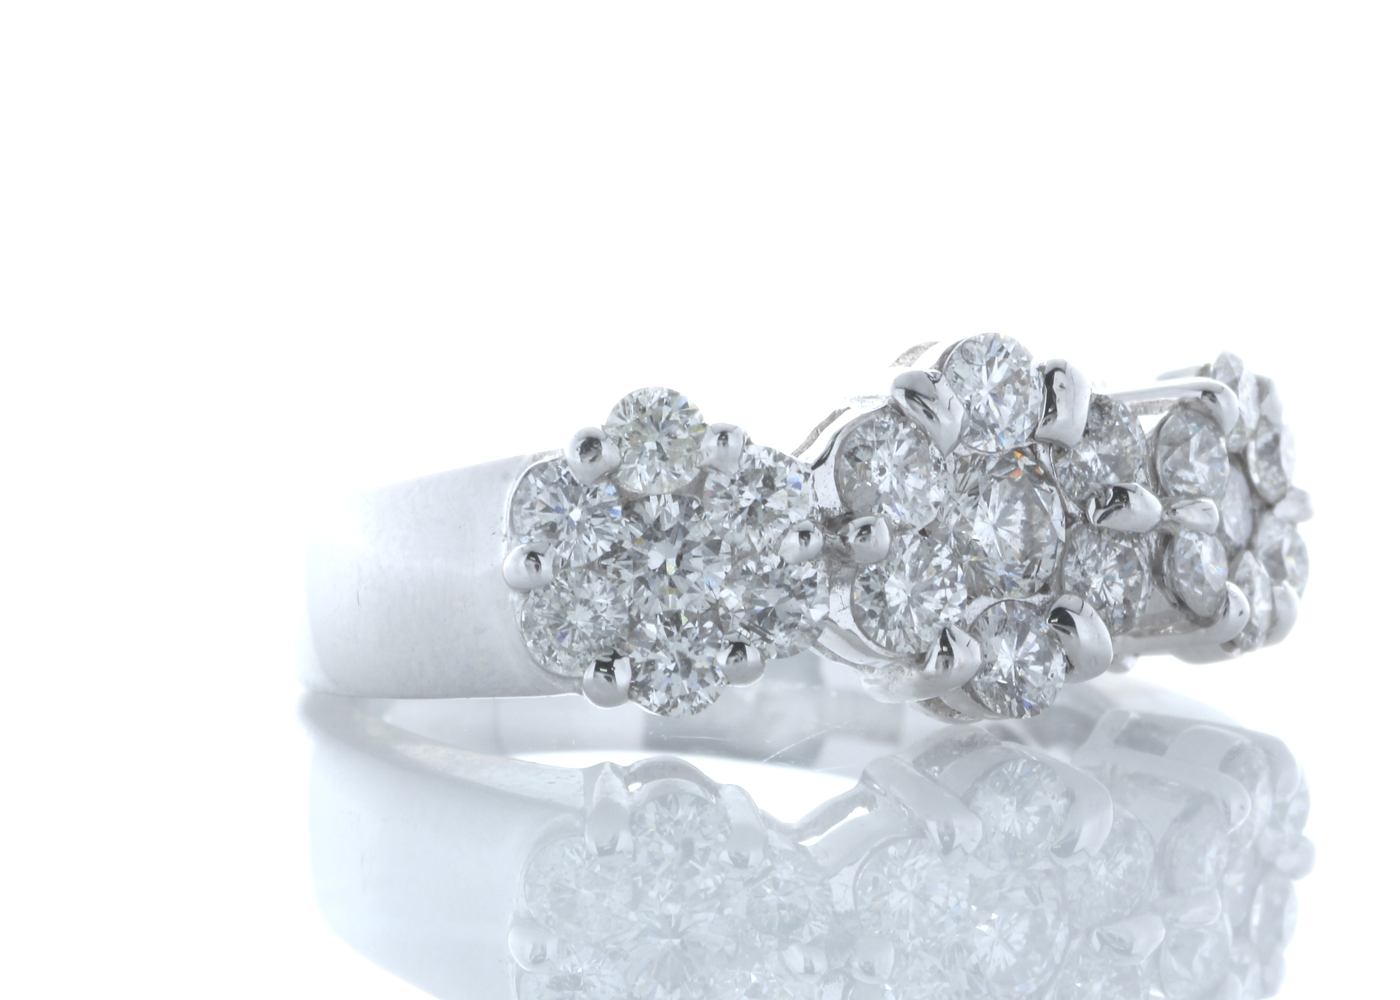 18ct White Gold Flower Cluster Diamond Ring 1.50 Carats - Image 4 of 5